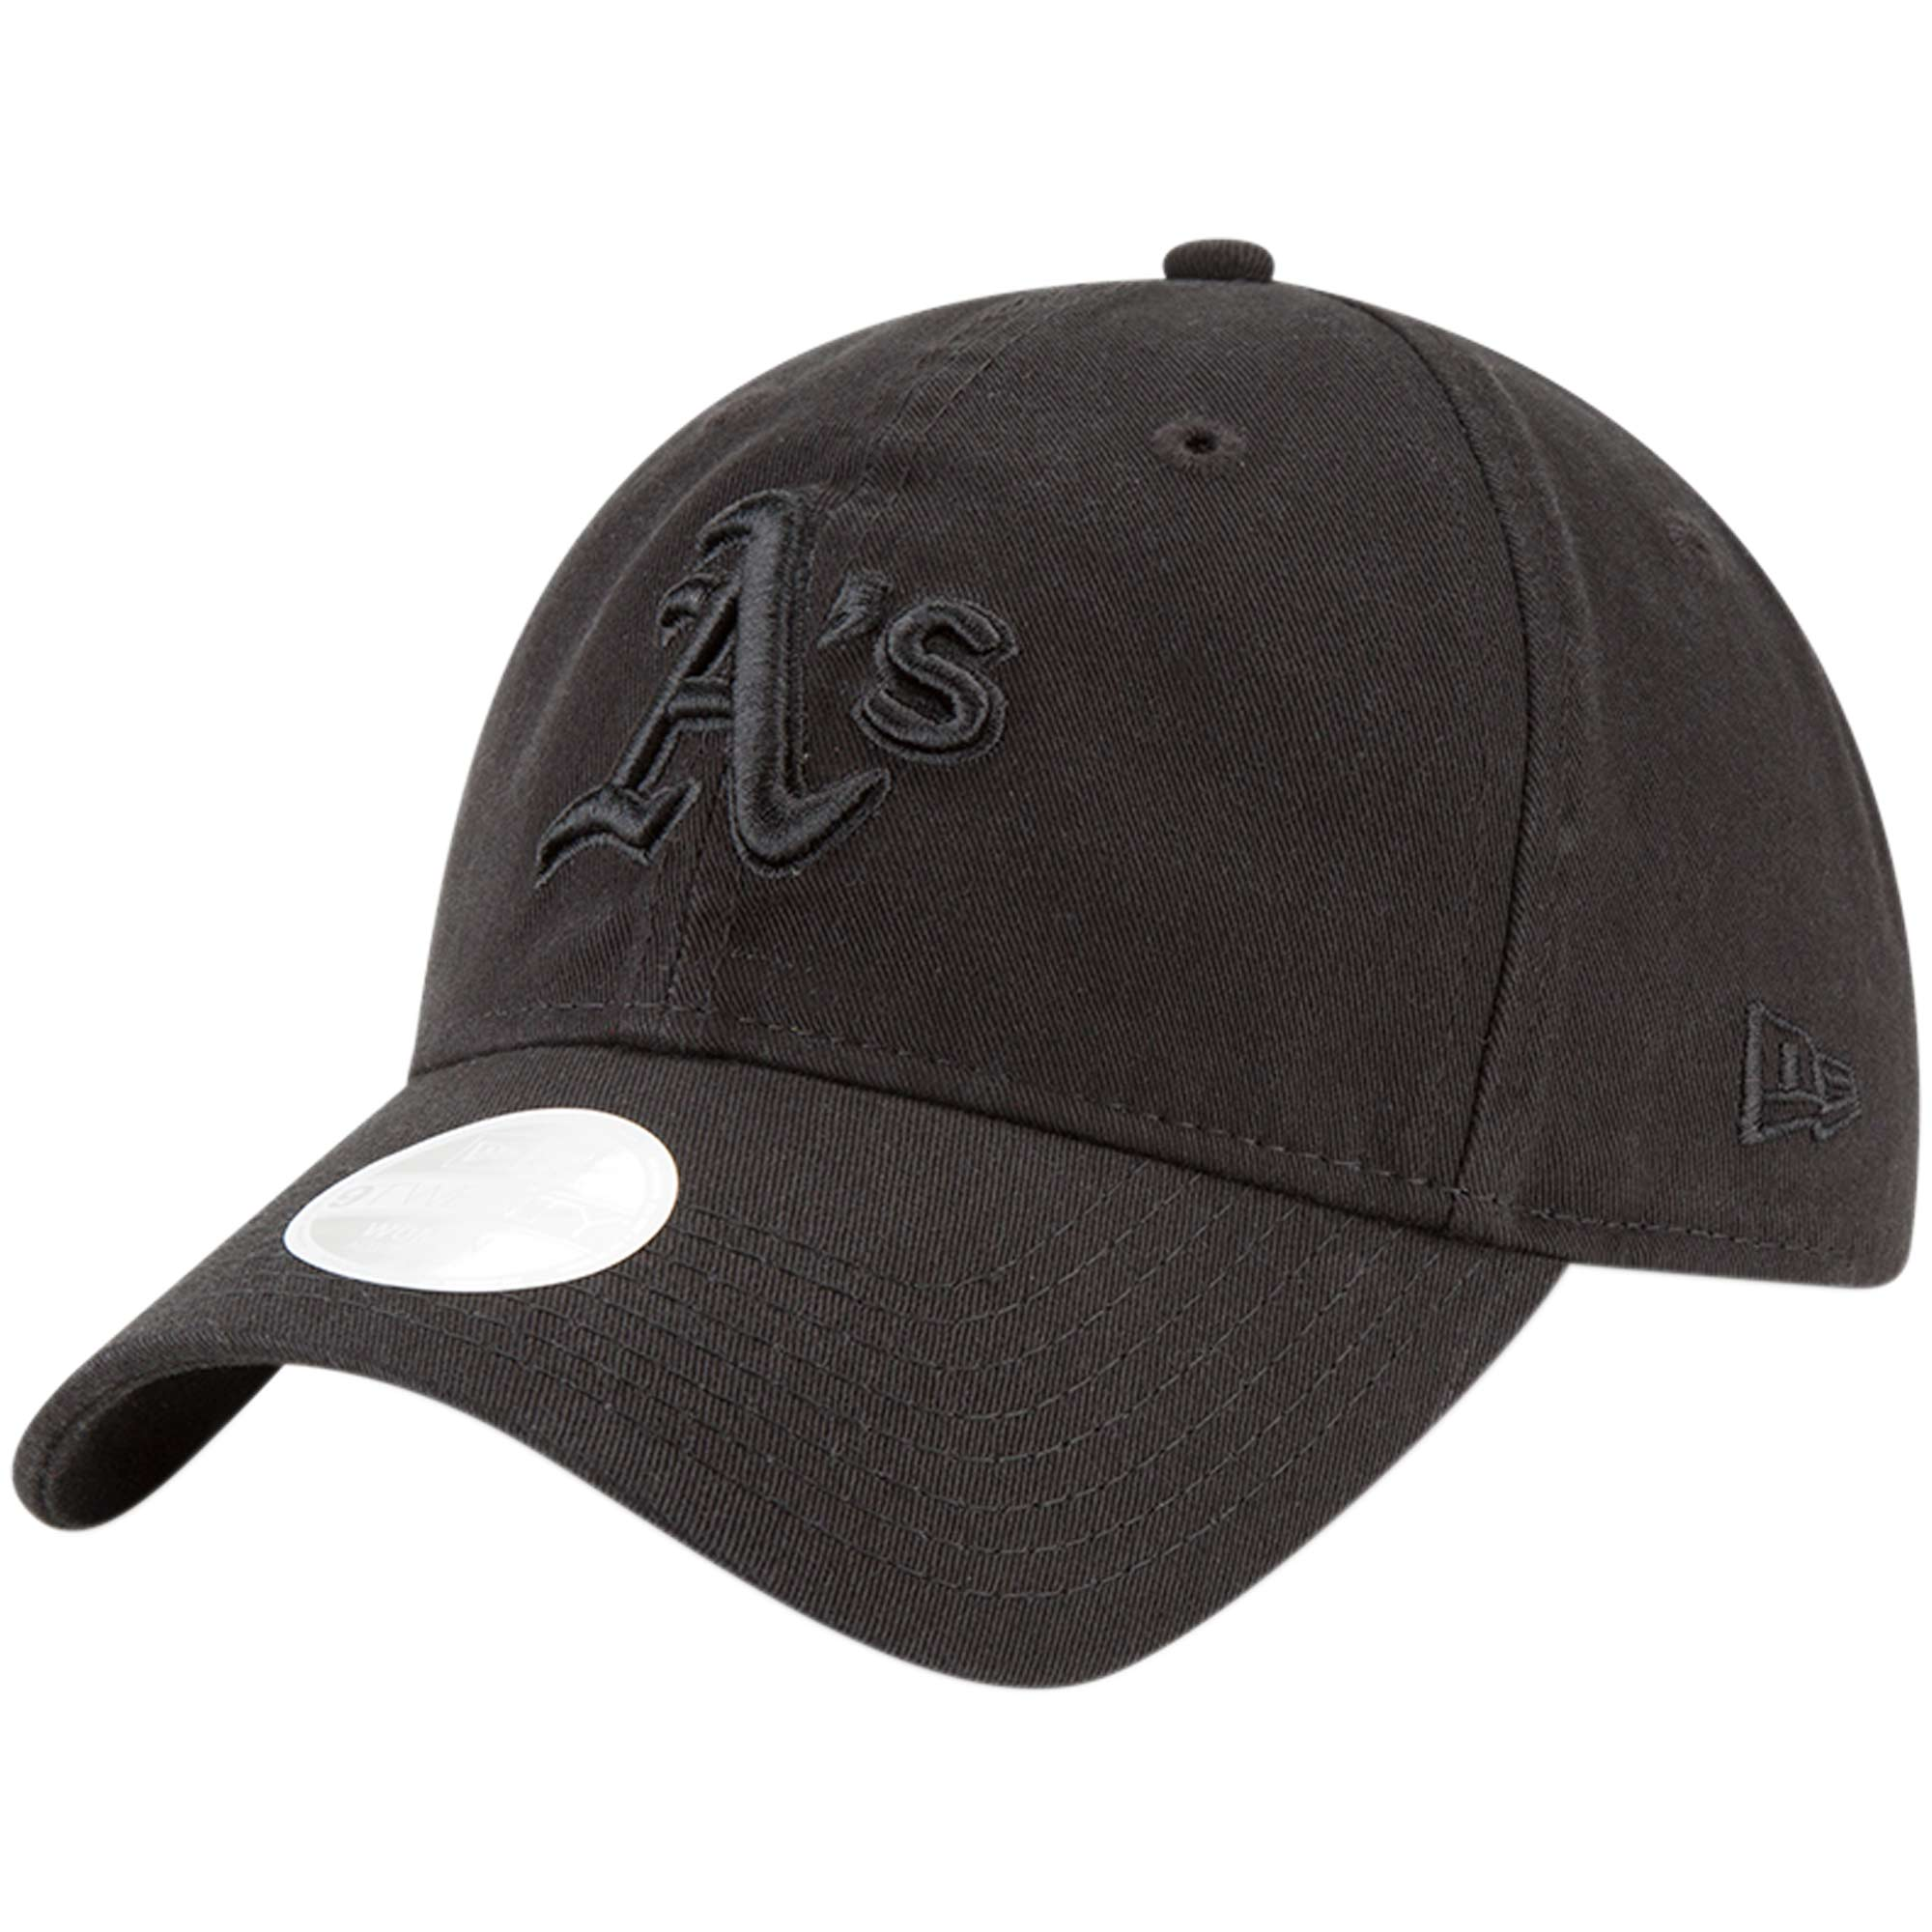 Oakland Athletics New Era Women's 9TWENTY Core Classic Twill Adjustable Hat - Black - OSFA